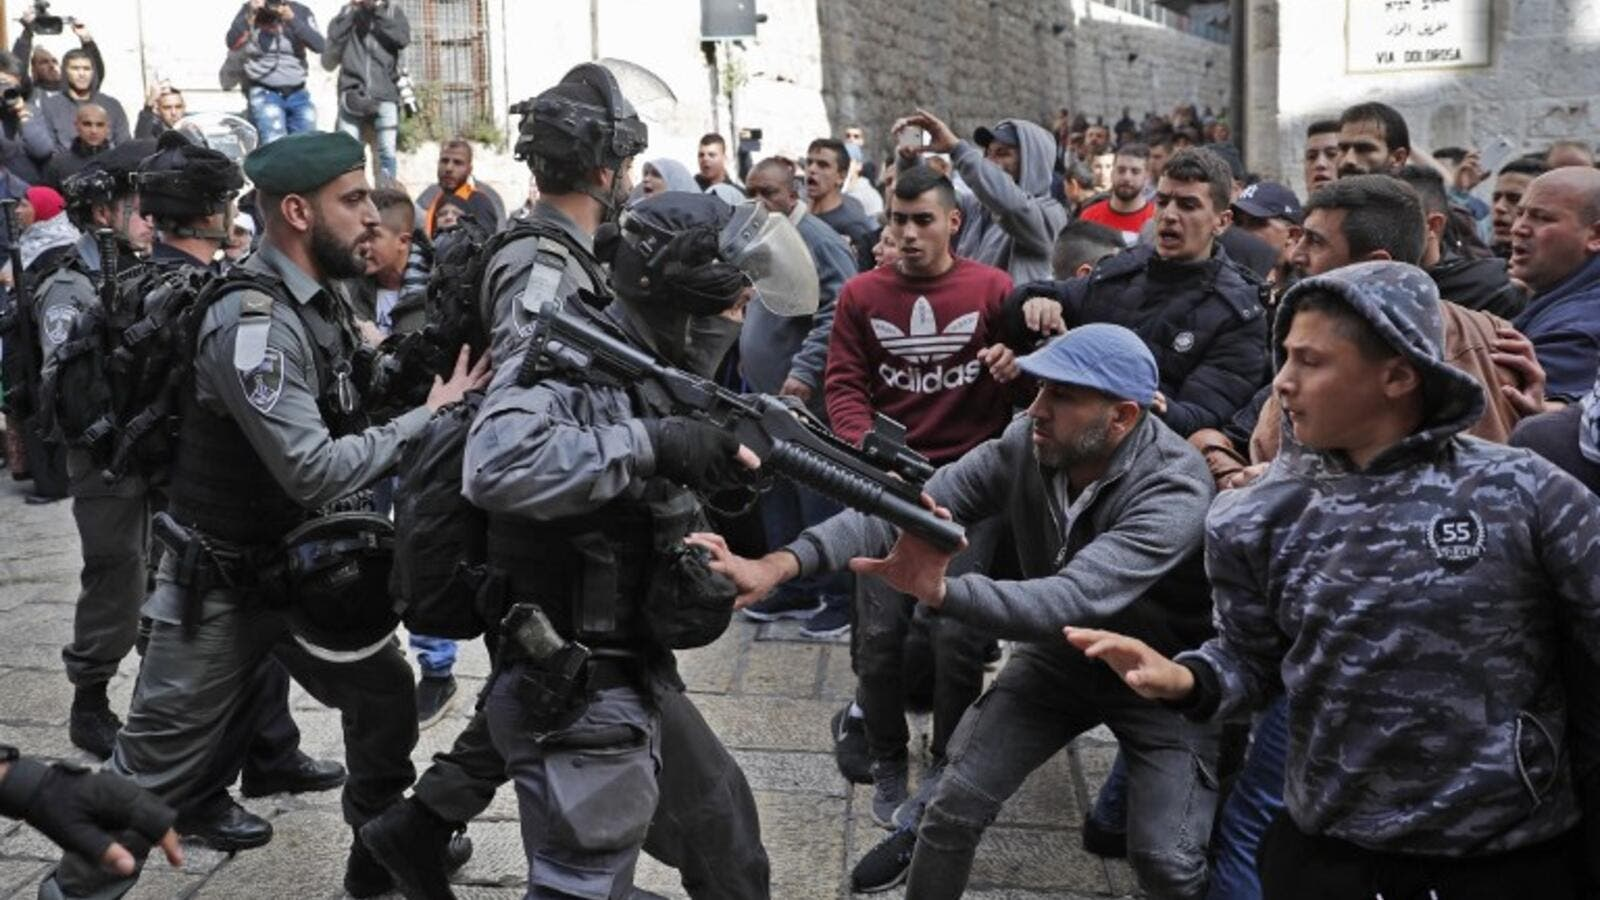 Israeli security forces and Palestinian protesters confront each other in Jerusalem's Old City on Dec. 15, 2017 (Thomas COEX / AFP)